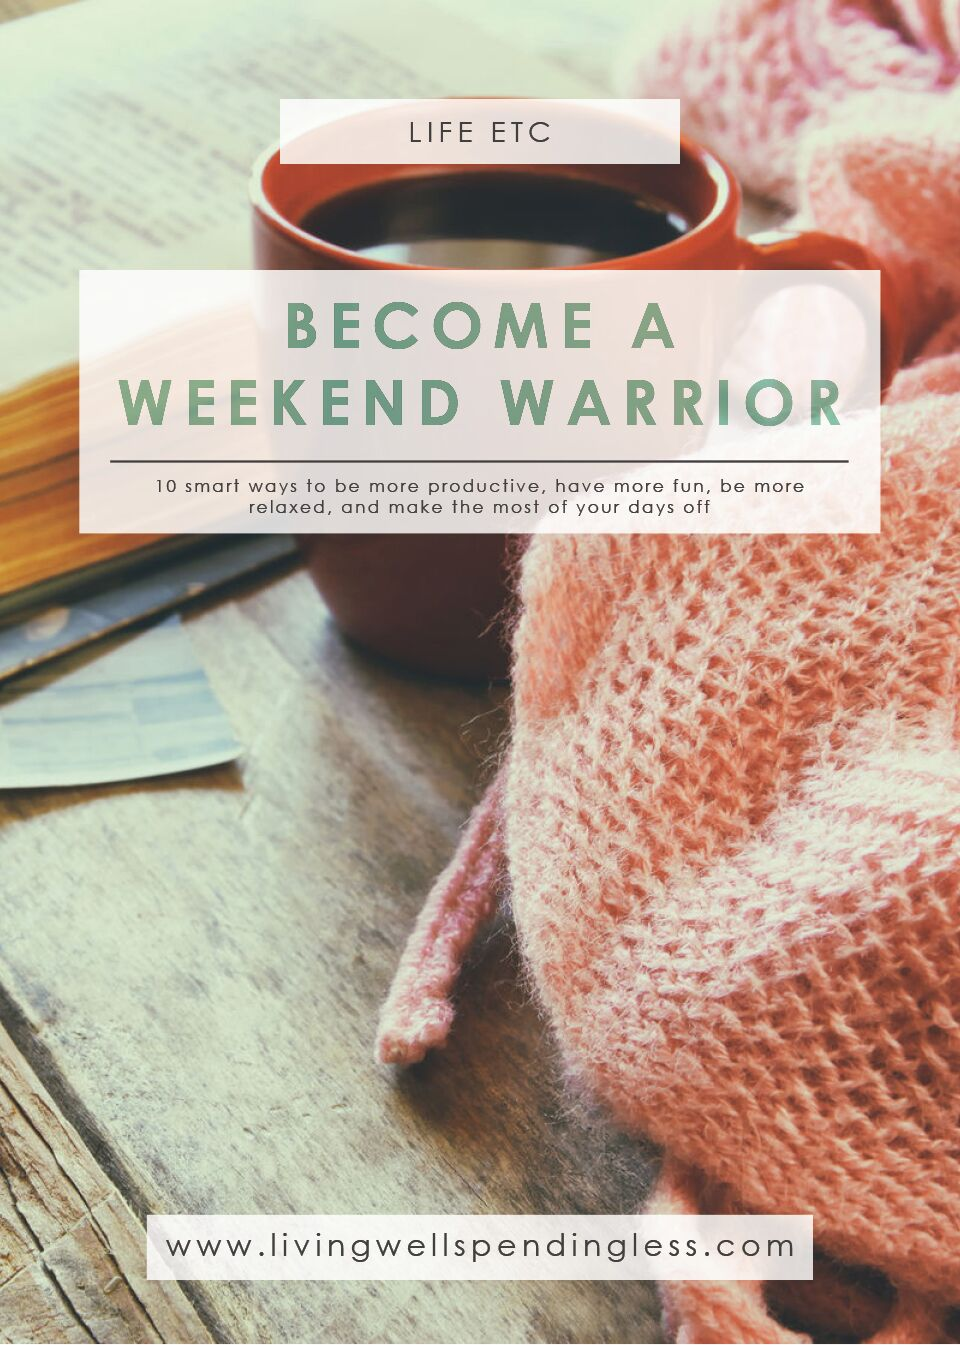 Follow these ten ways to Become a Weekend Warrior! You'll thank yourself.